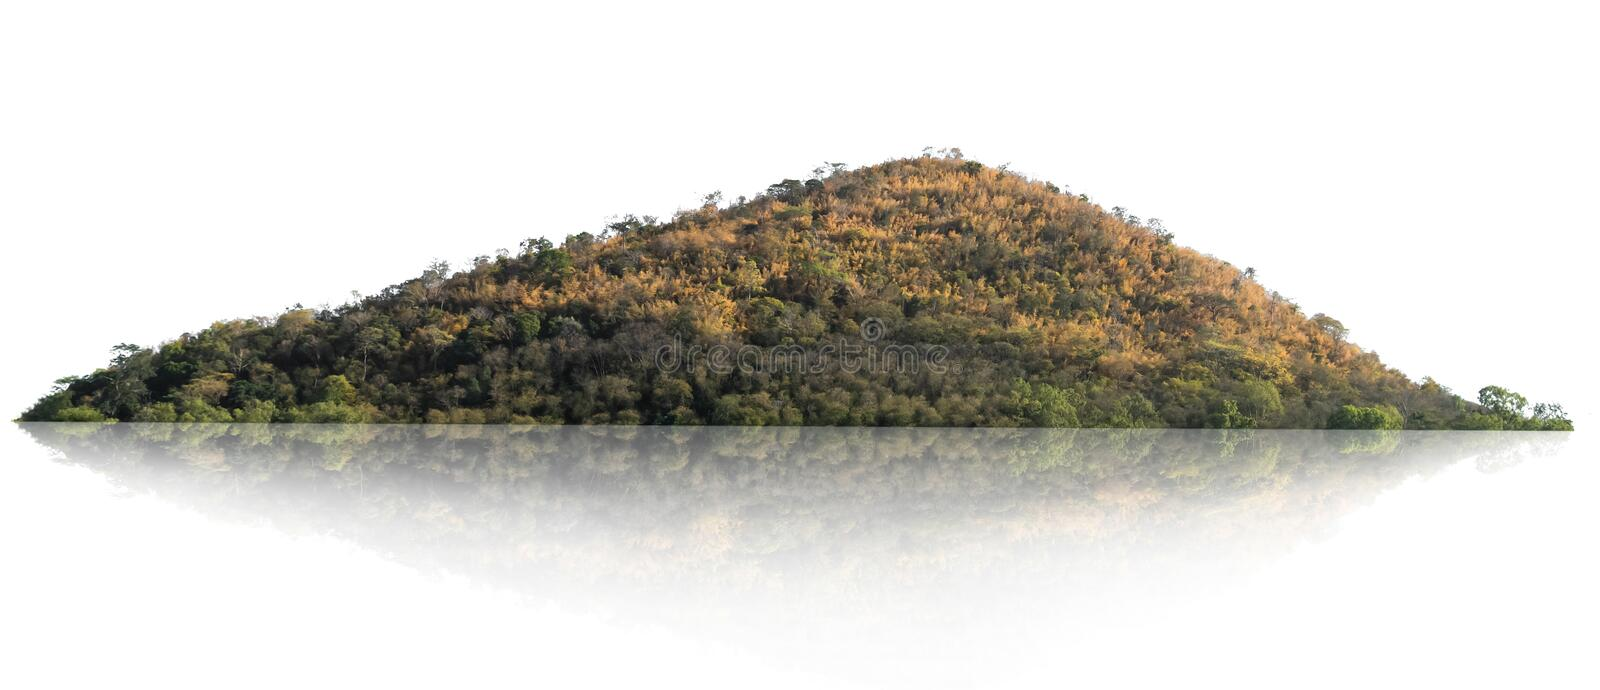 Rock mountain hill with  green forest isolate on white background stock photography